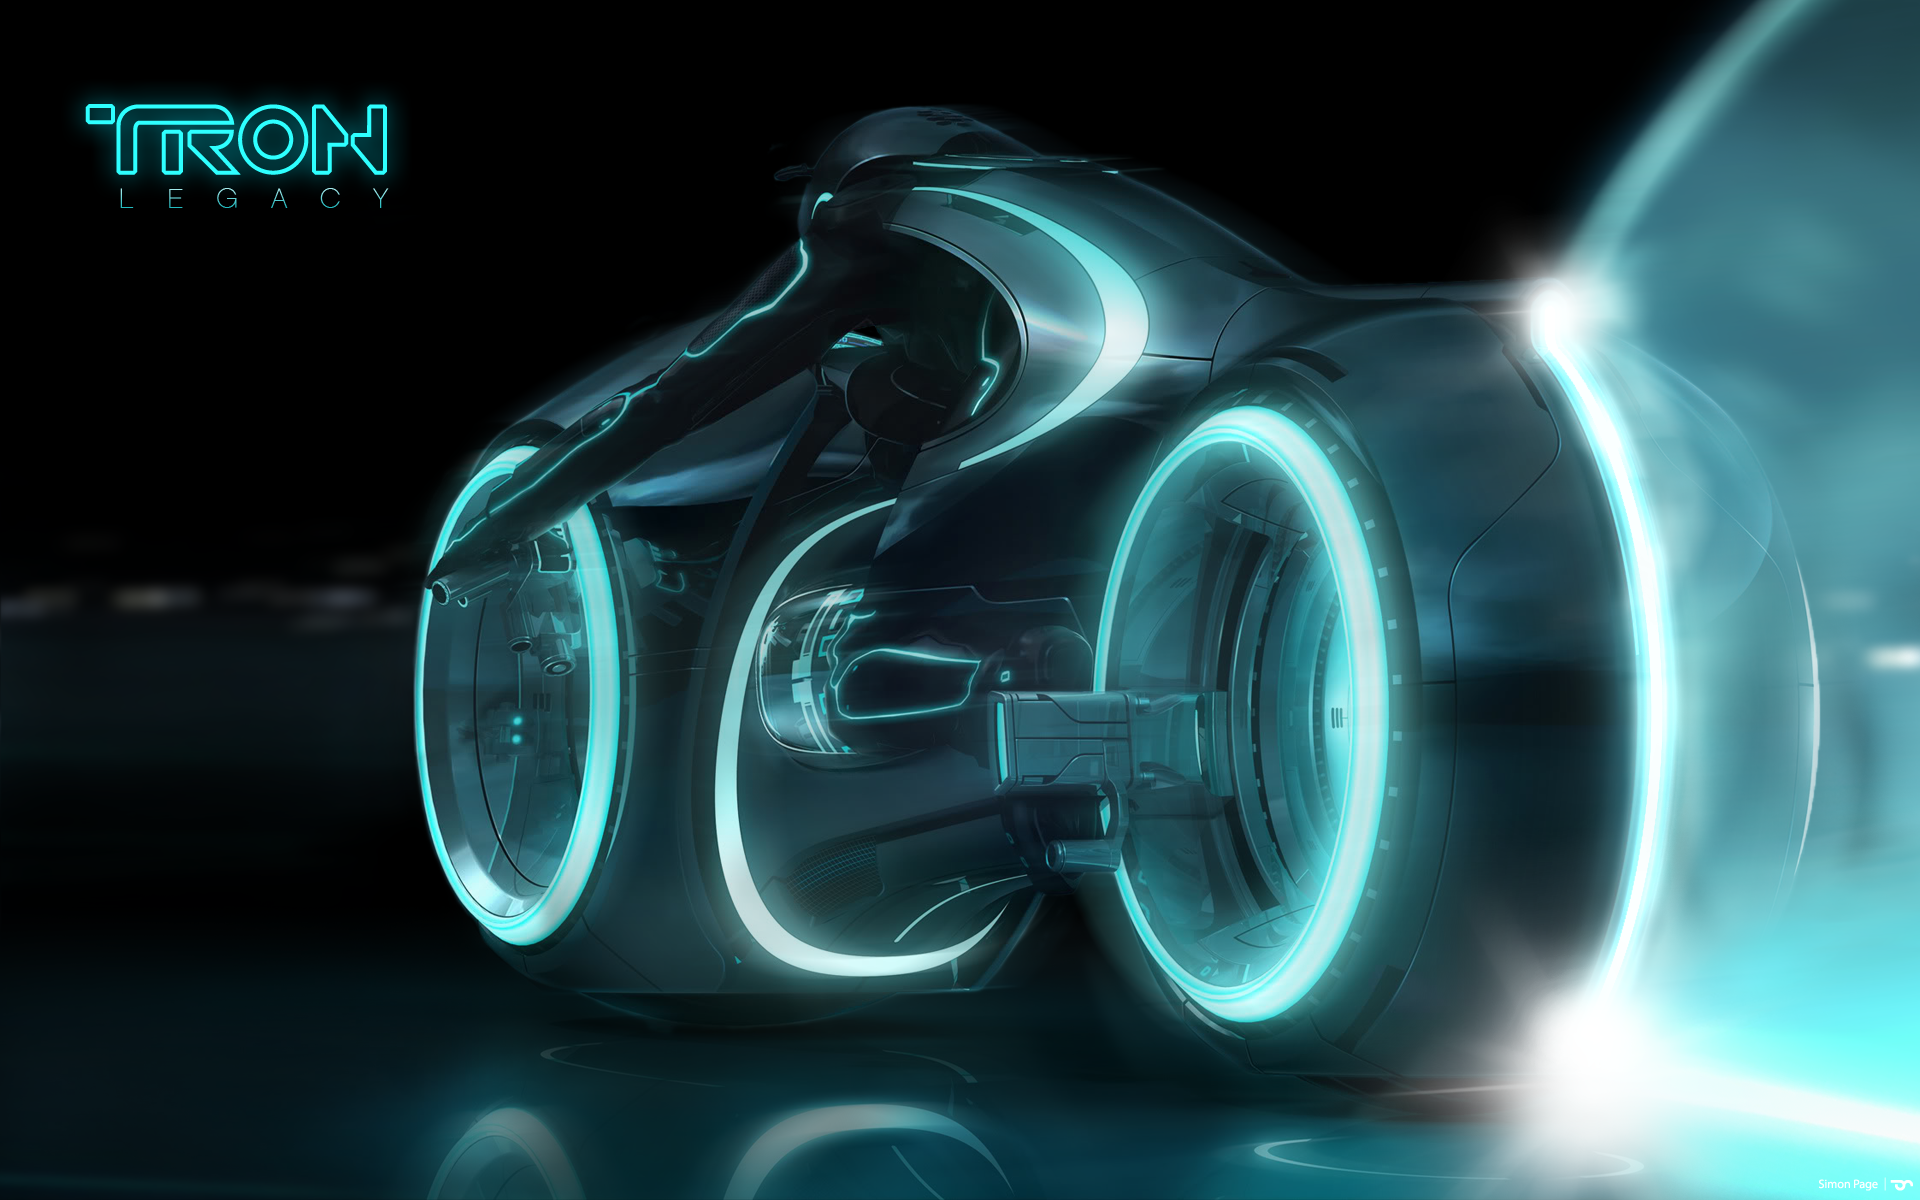 Tron Legacy Wallpaper 1920 X 1200 Lightcycle From 3D Rendering